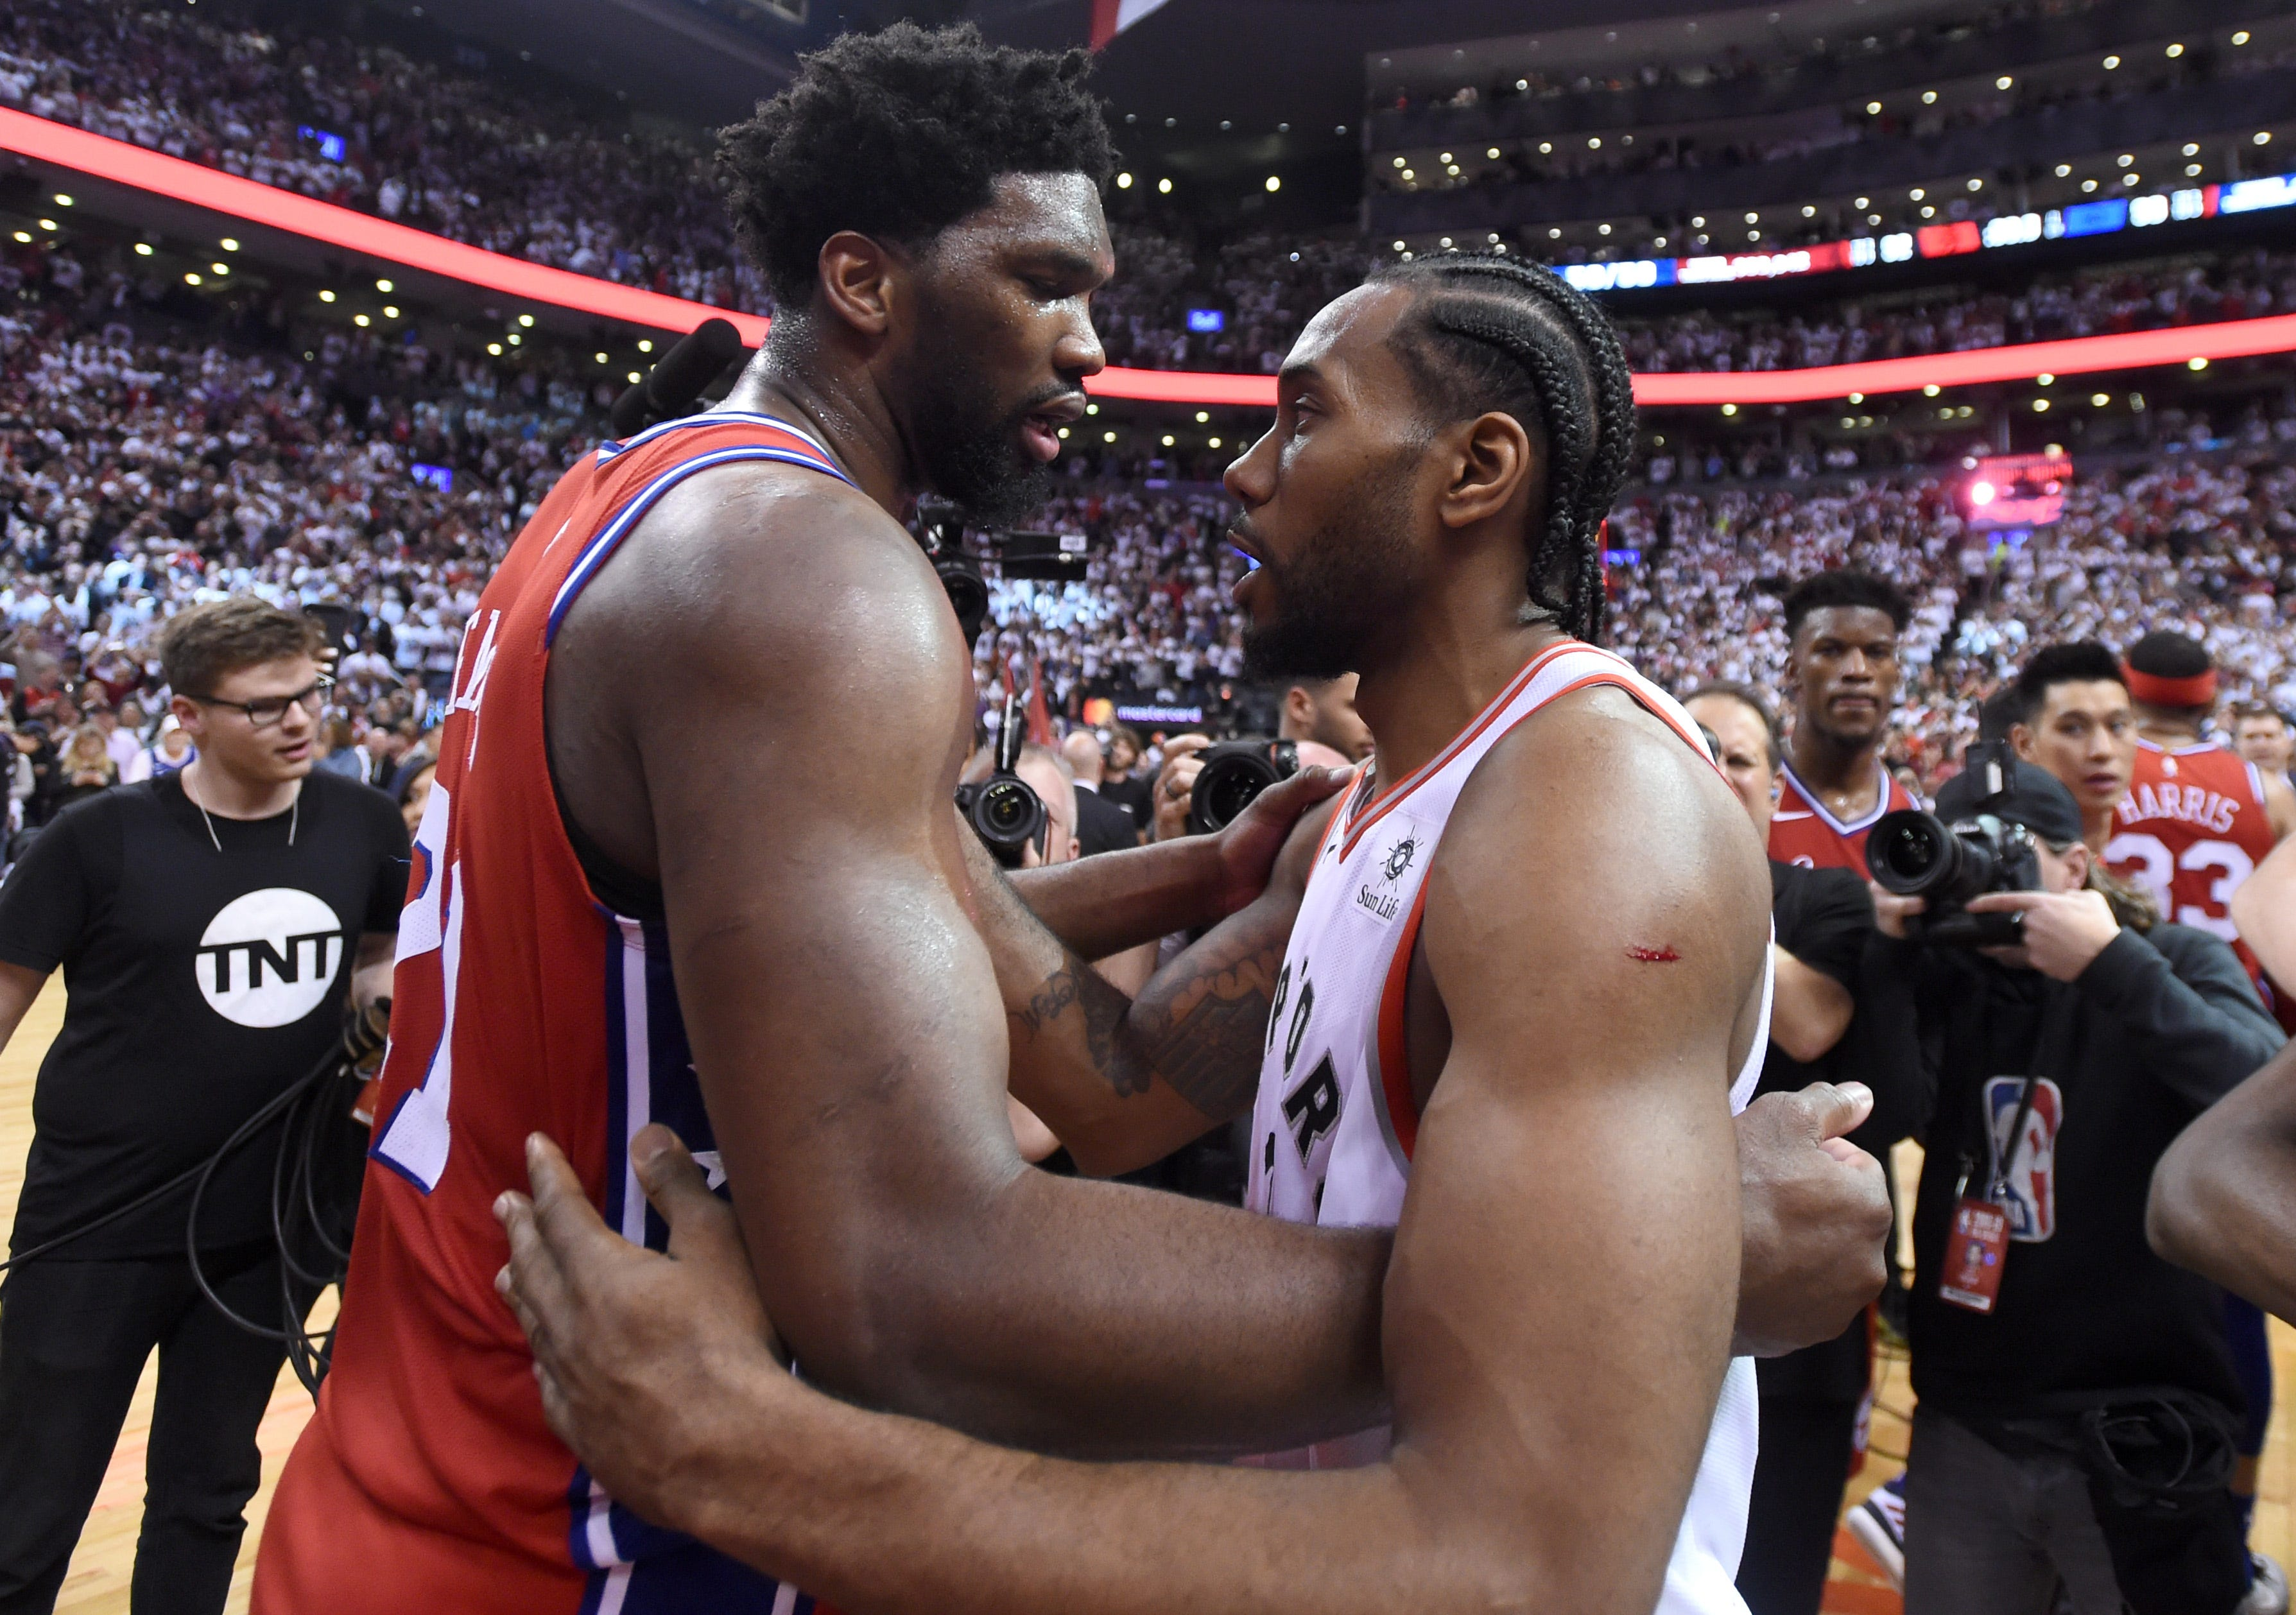 Joel Embiid leaves court in tears after 76ers lose on Kawhi Leonard buzzer-beater